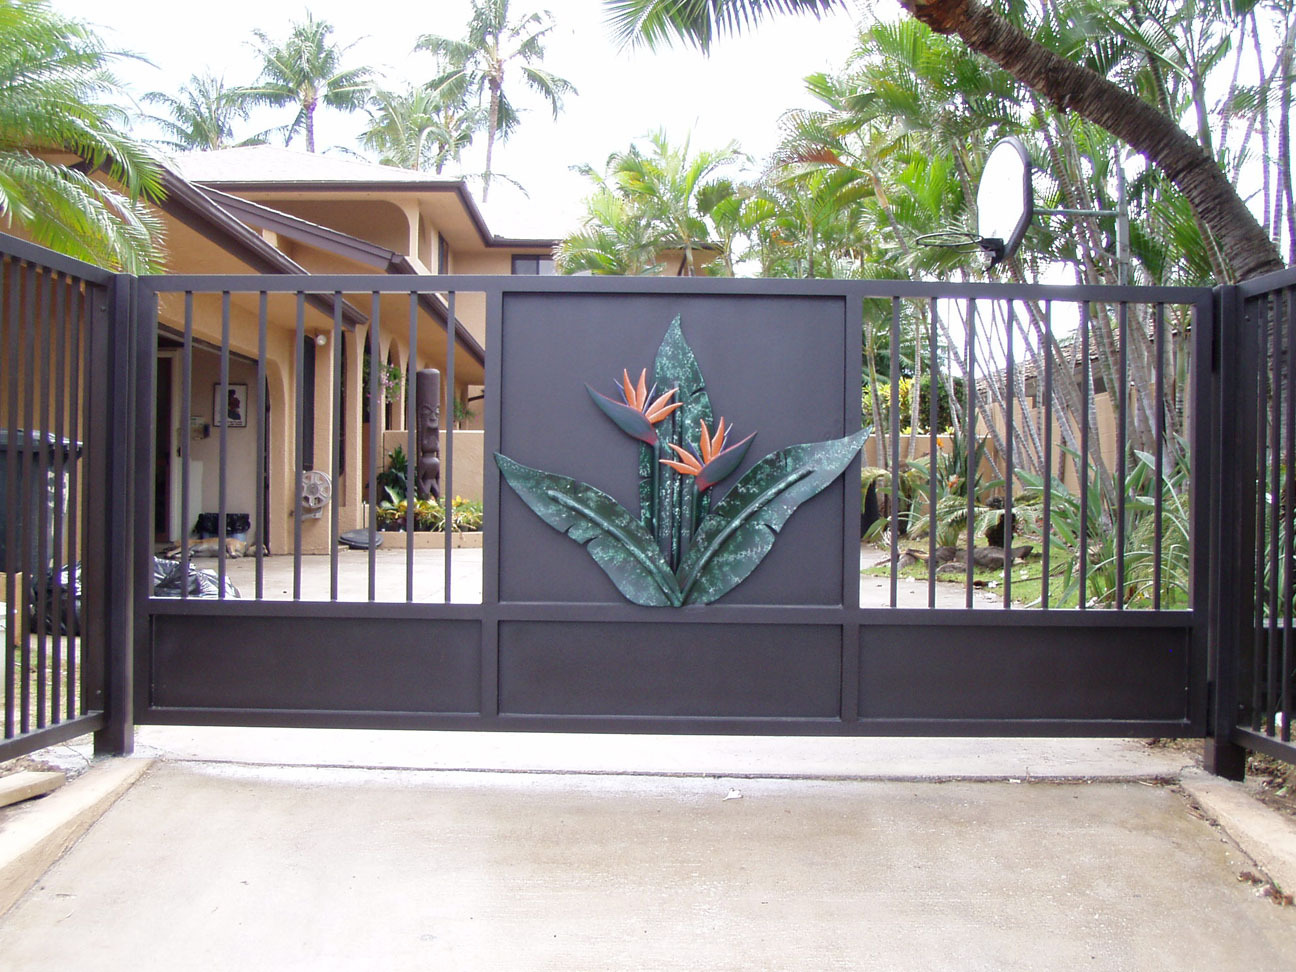 Gates installed across Hawaii